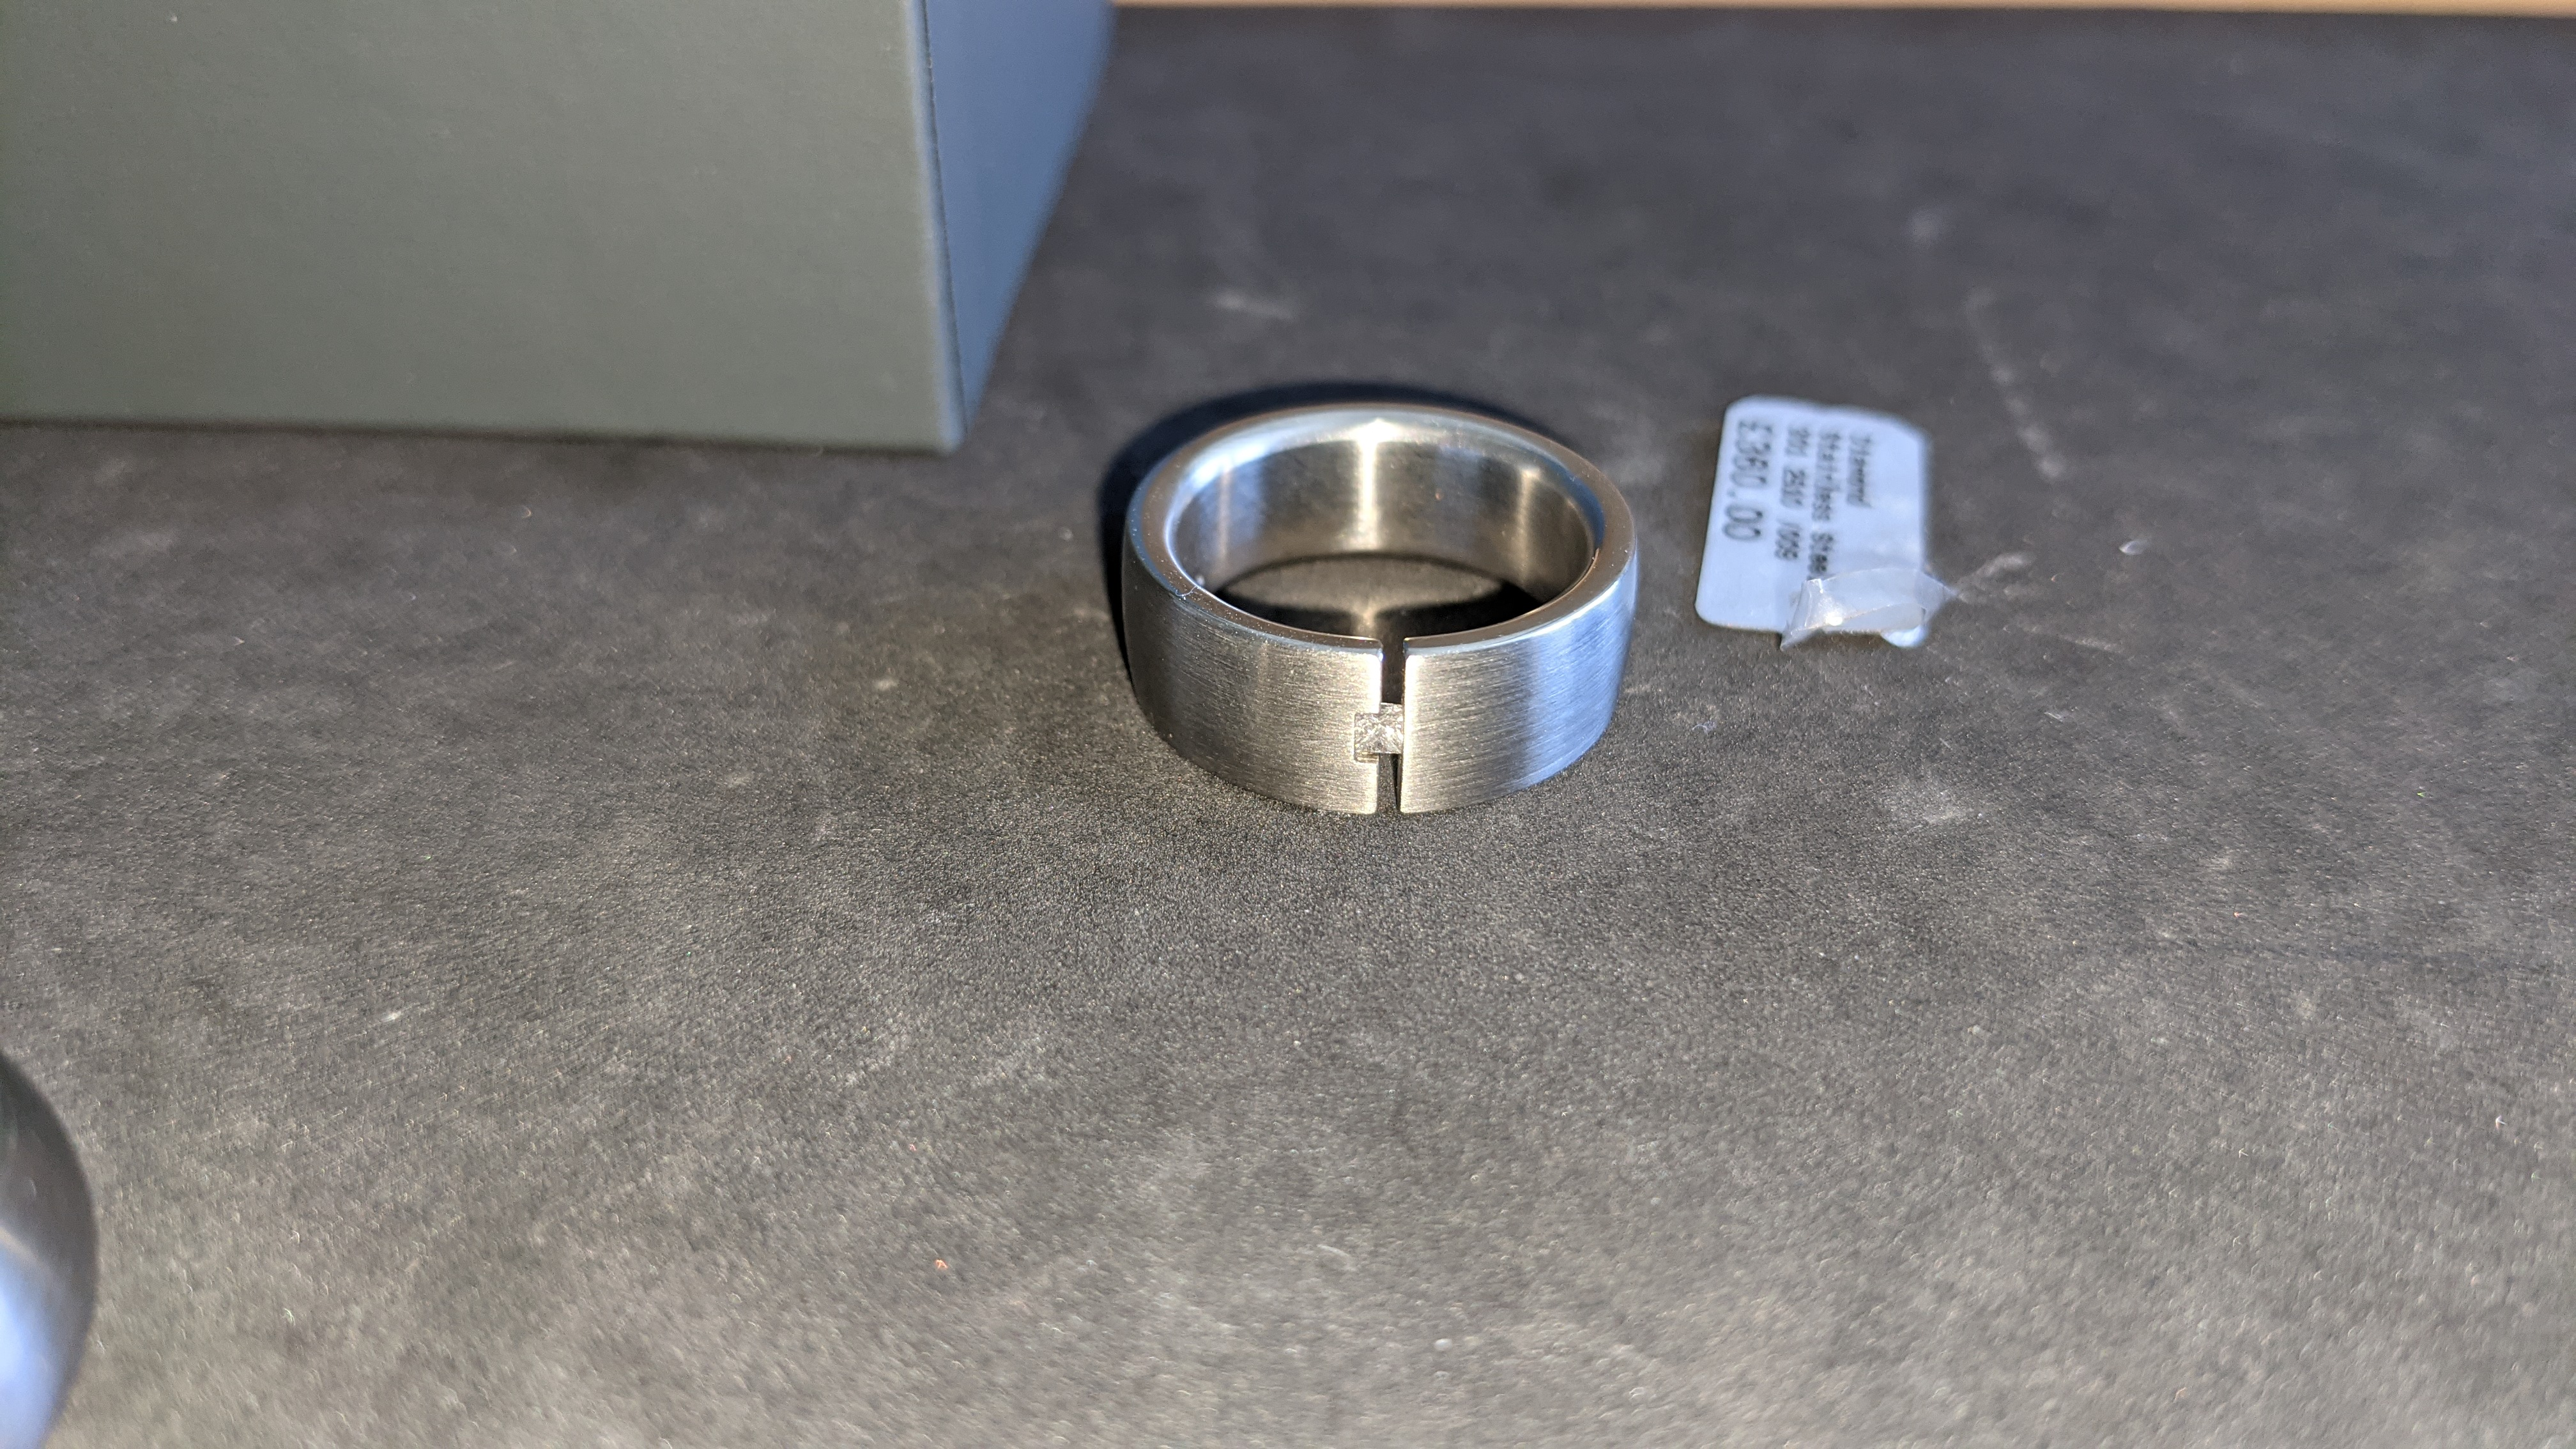 3 off assorted stainless steel & diamond rings with RRPs of £360, £378 & £379. Total RRP £1,117 - Image 4 of 14